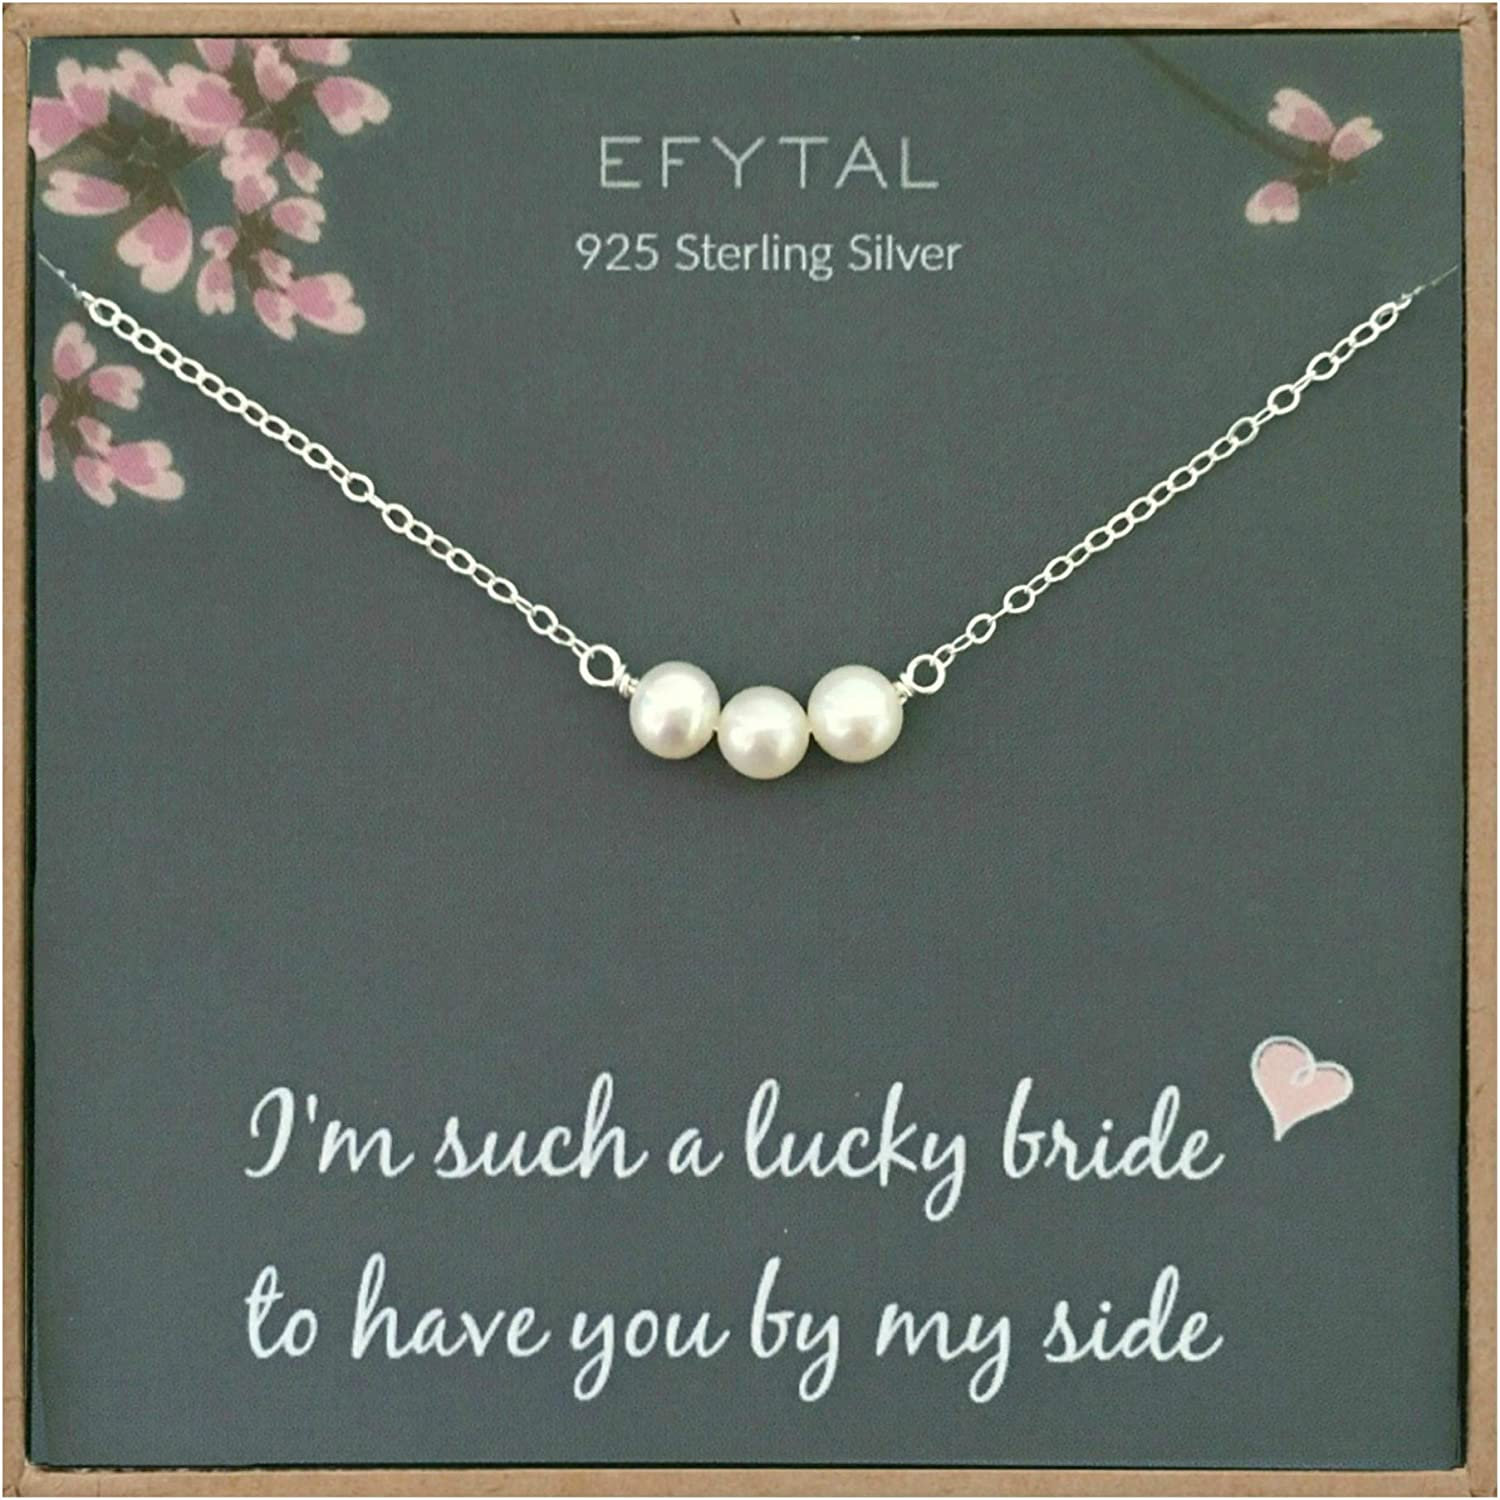 Amazon Com Efytal Bridesmaid Gifts 925 Sterling Silver Cultured Freshwater Pearl Necklace For Bridesmaids Bridal Party Gift From Bride Wedding Pendant Jewelry For Women Clothing